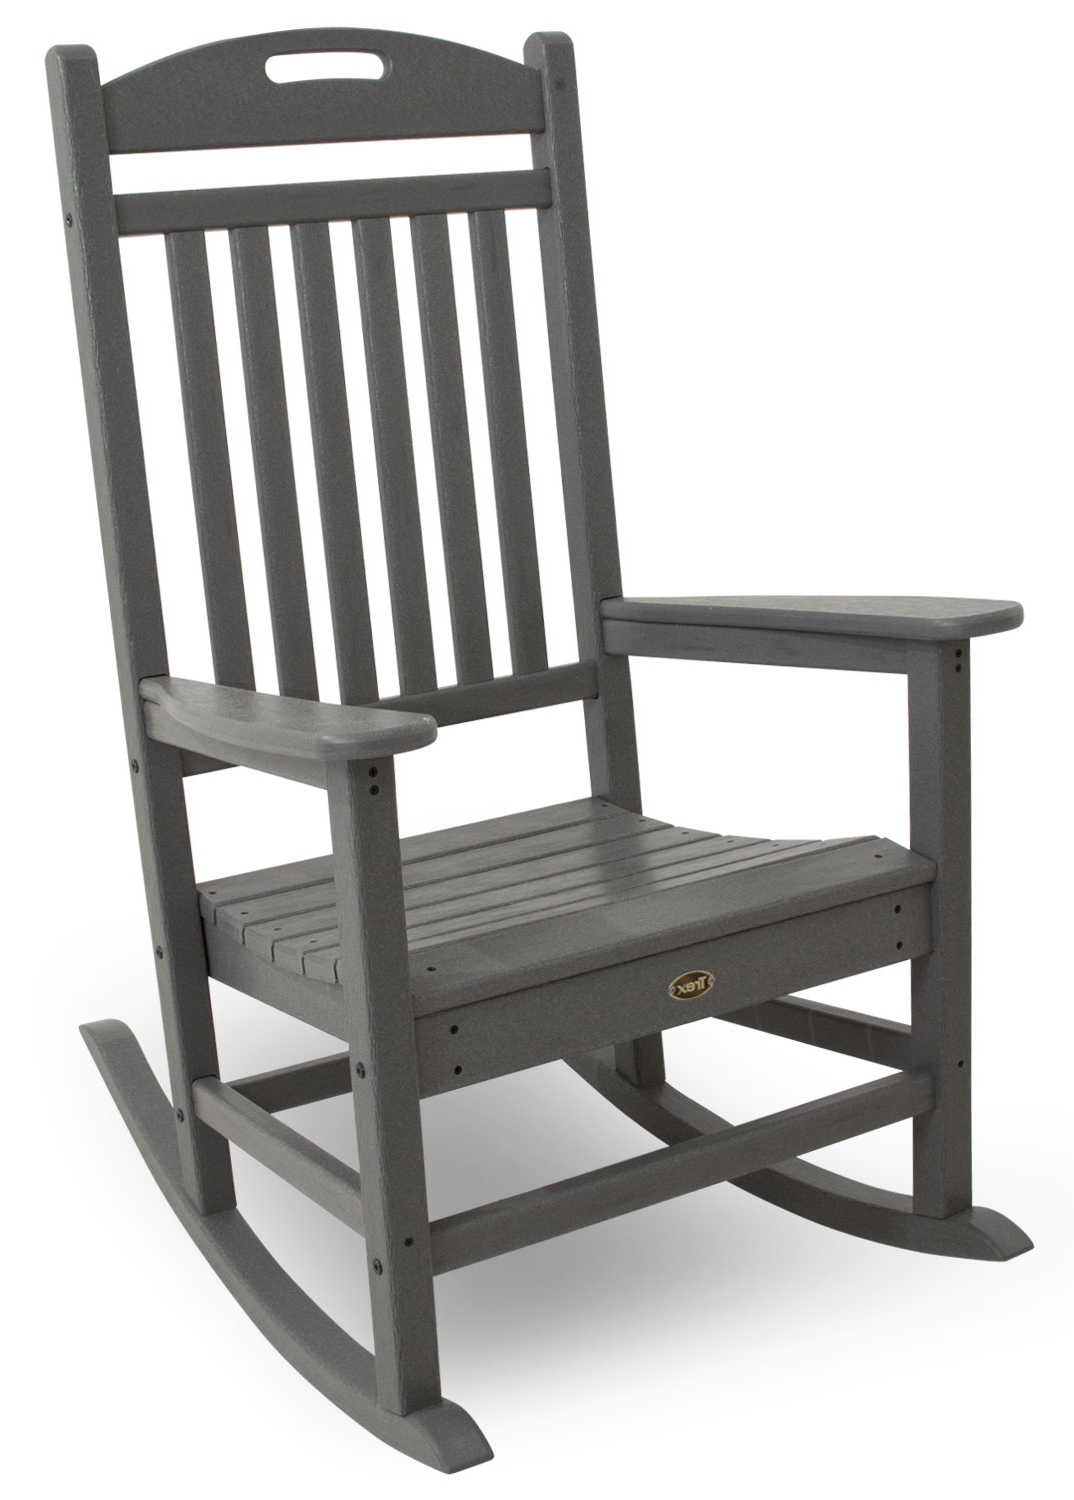 Widely Used Yacht Club Rocking Chair Throughout Patio Rocking Chairs With Covers (View 5 of 15)